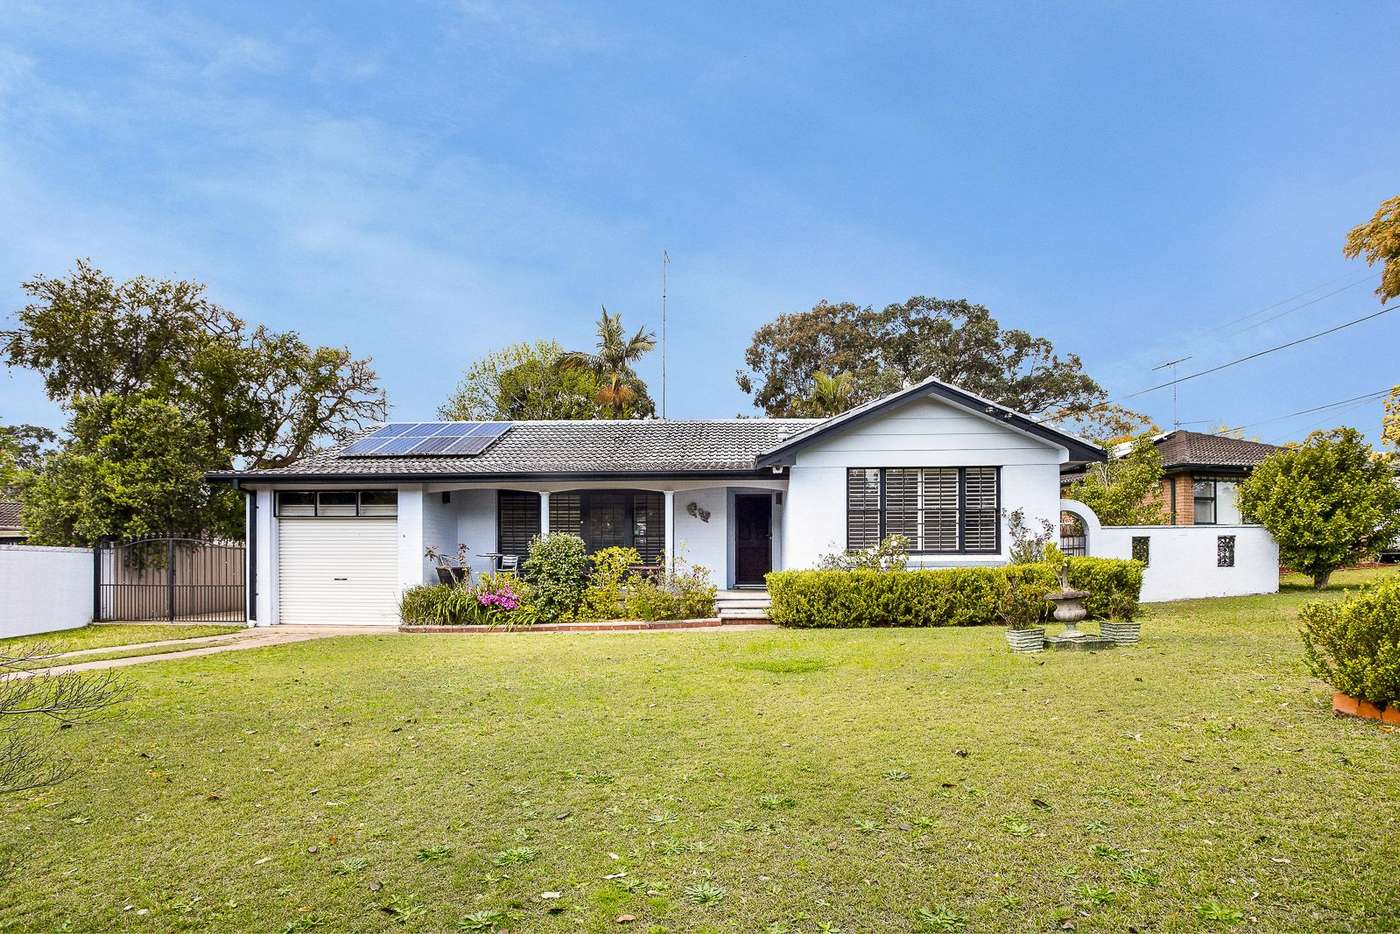 Main view of Homely house listing, 4 Hollier Place, Baulkham Hills NSW 2153